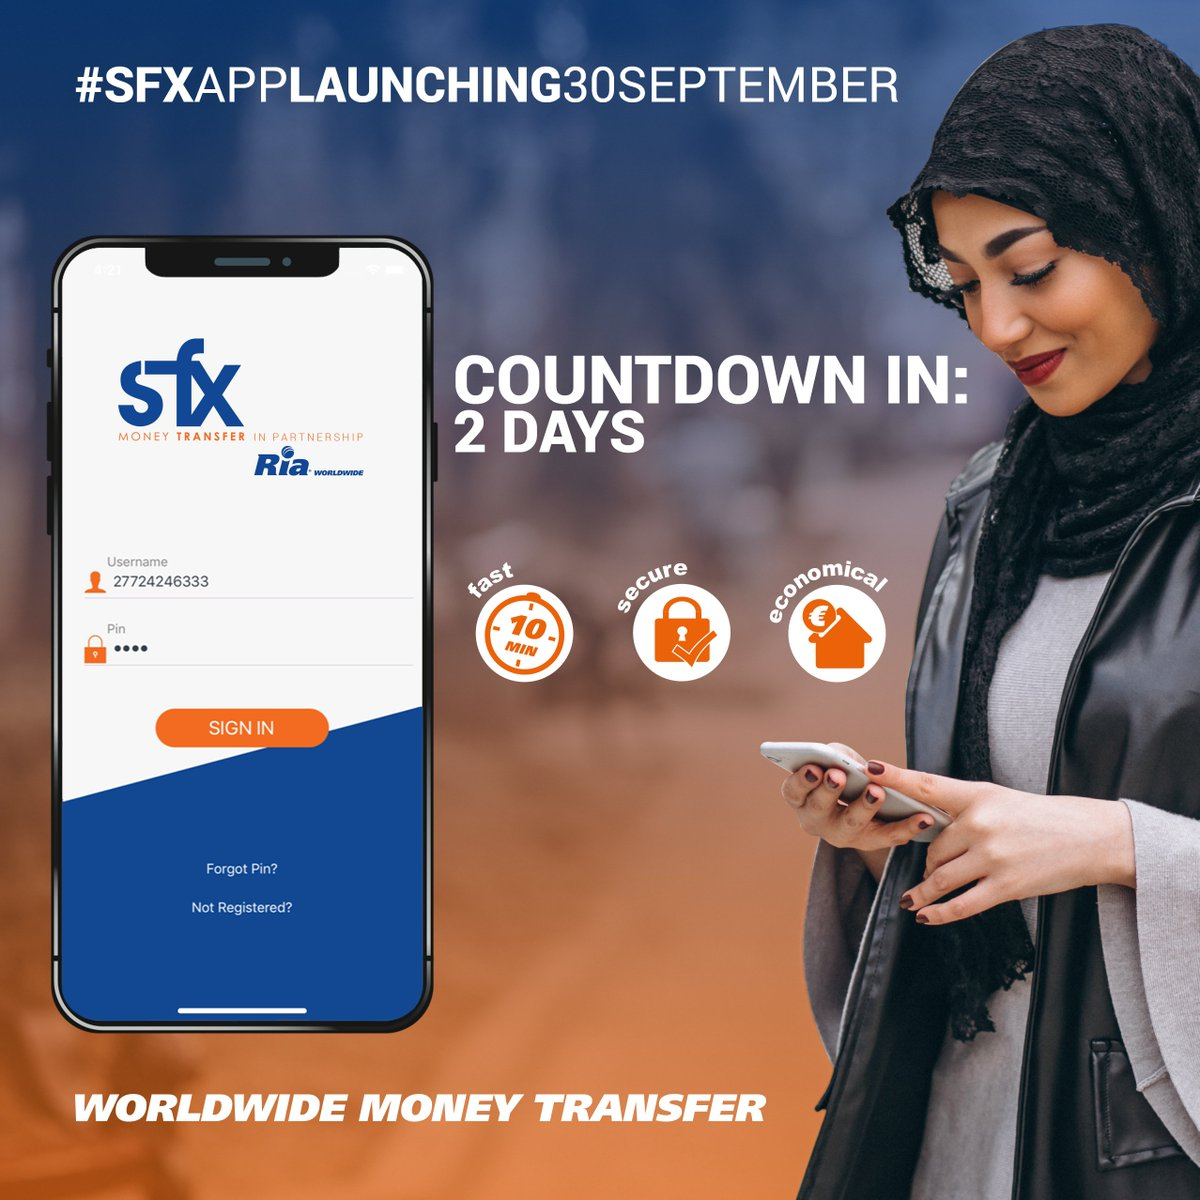 Money Transfer In Partnership With Ria